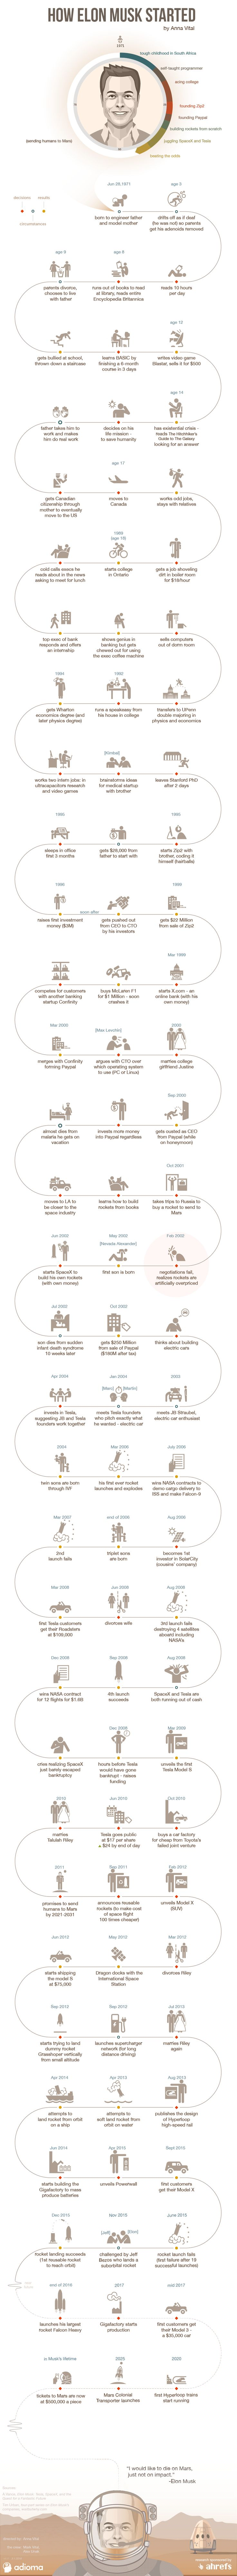 Infographic showing Elon Musk`s life from his birth to where he is today.